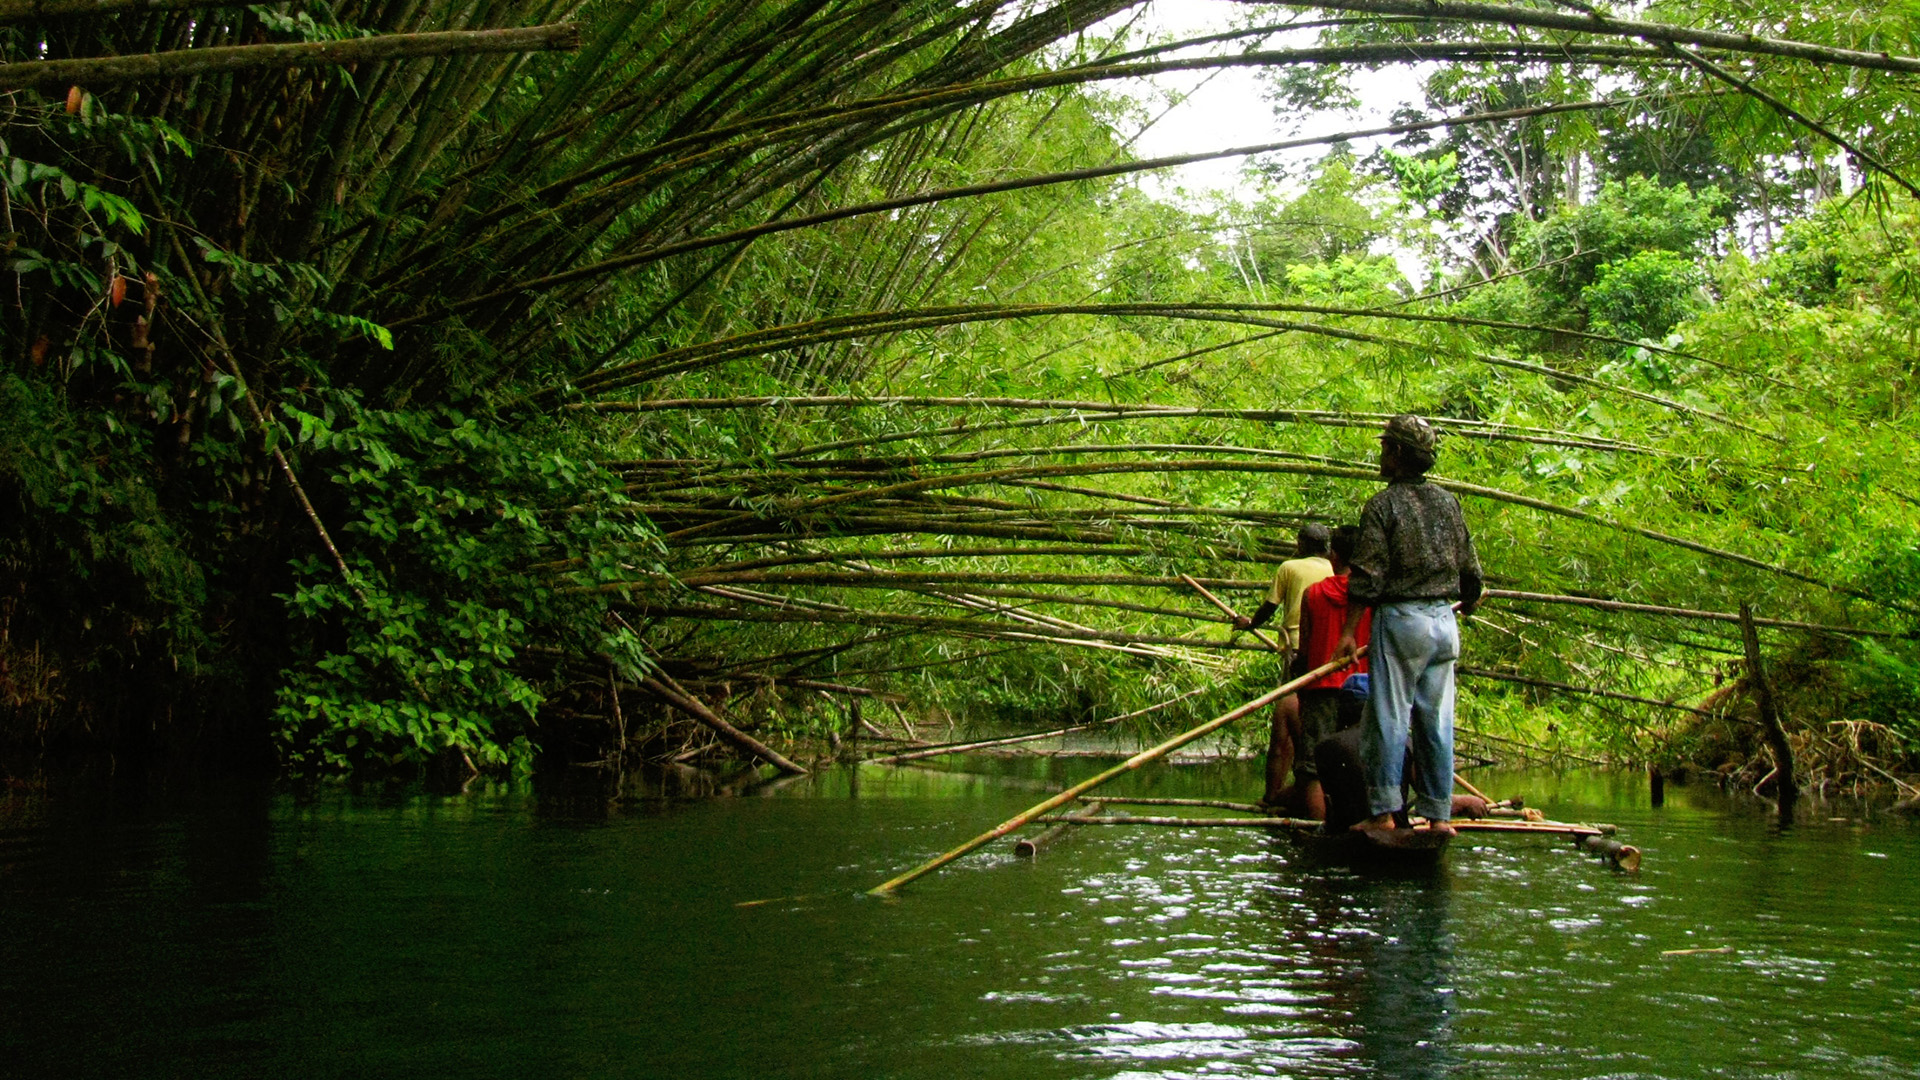 Indigenous leader advocates for rights and territories of life at ASEAN biodiversity conference